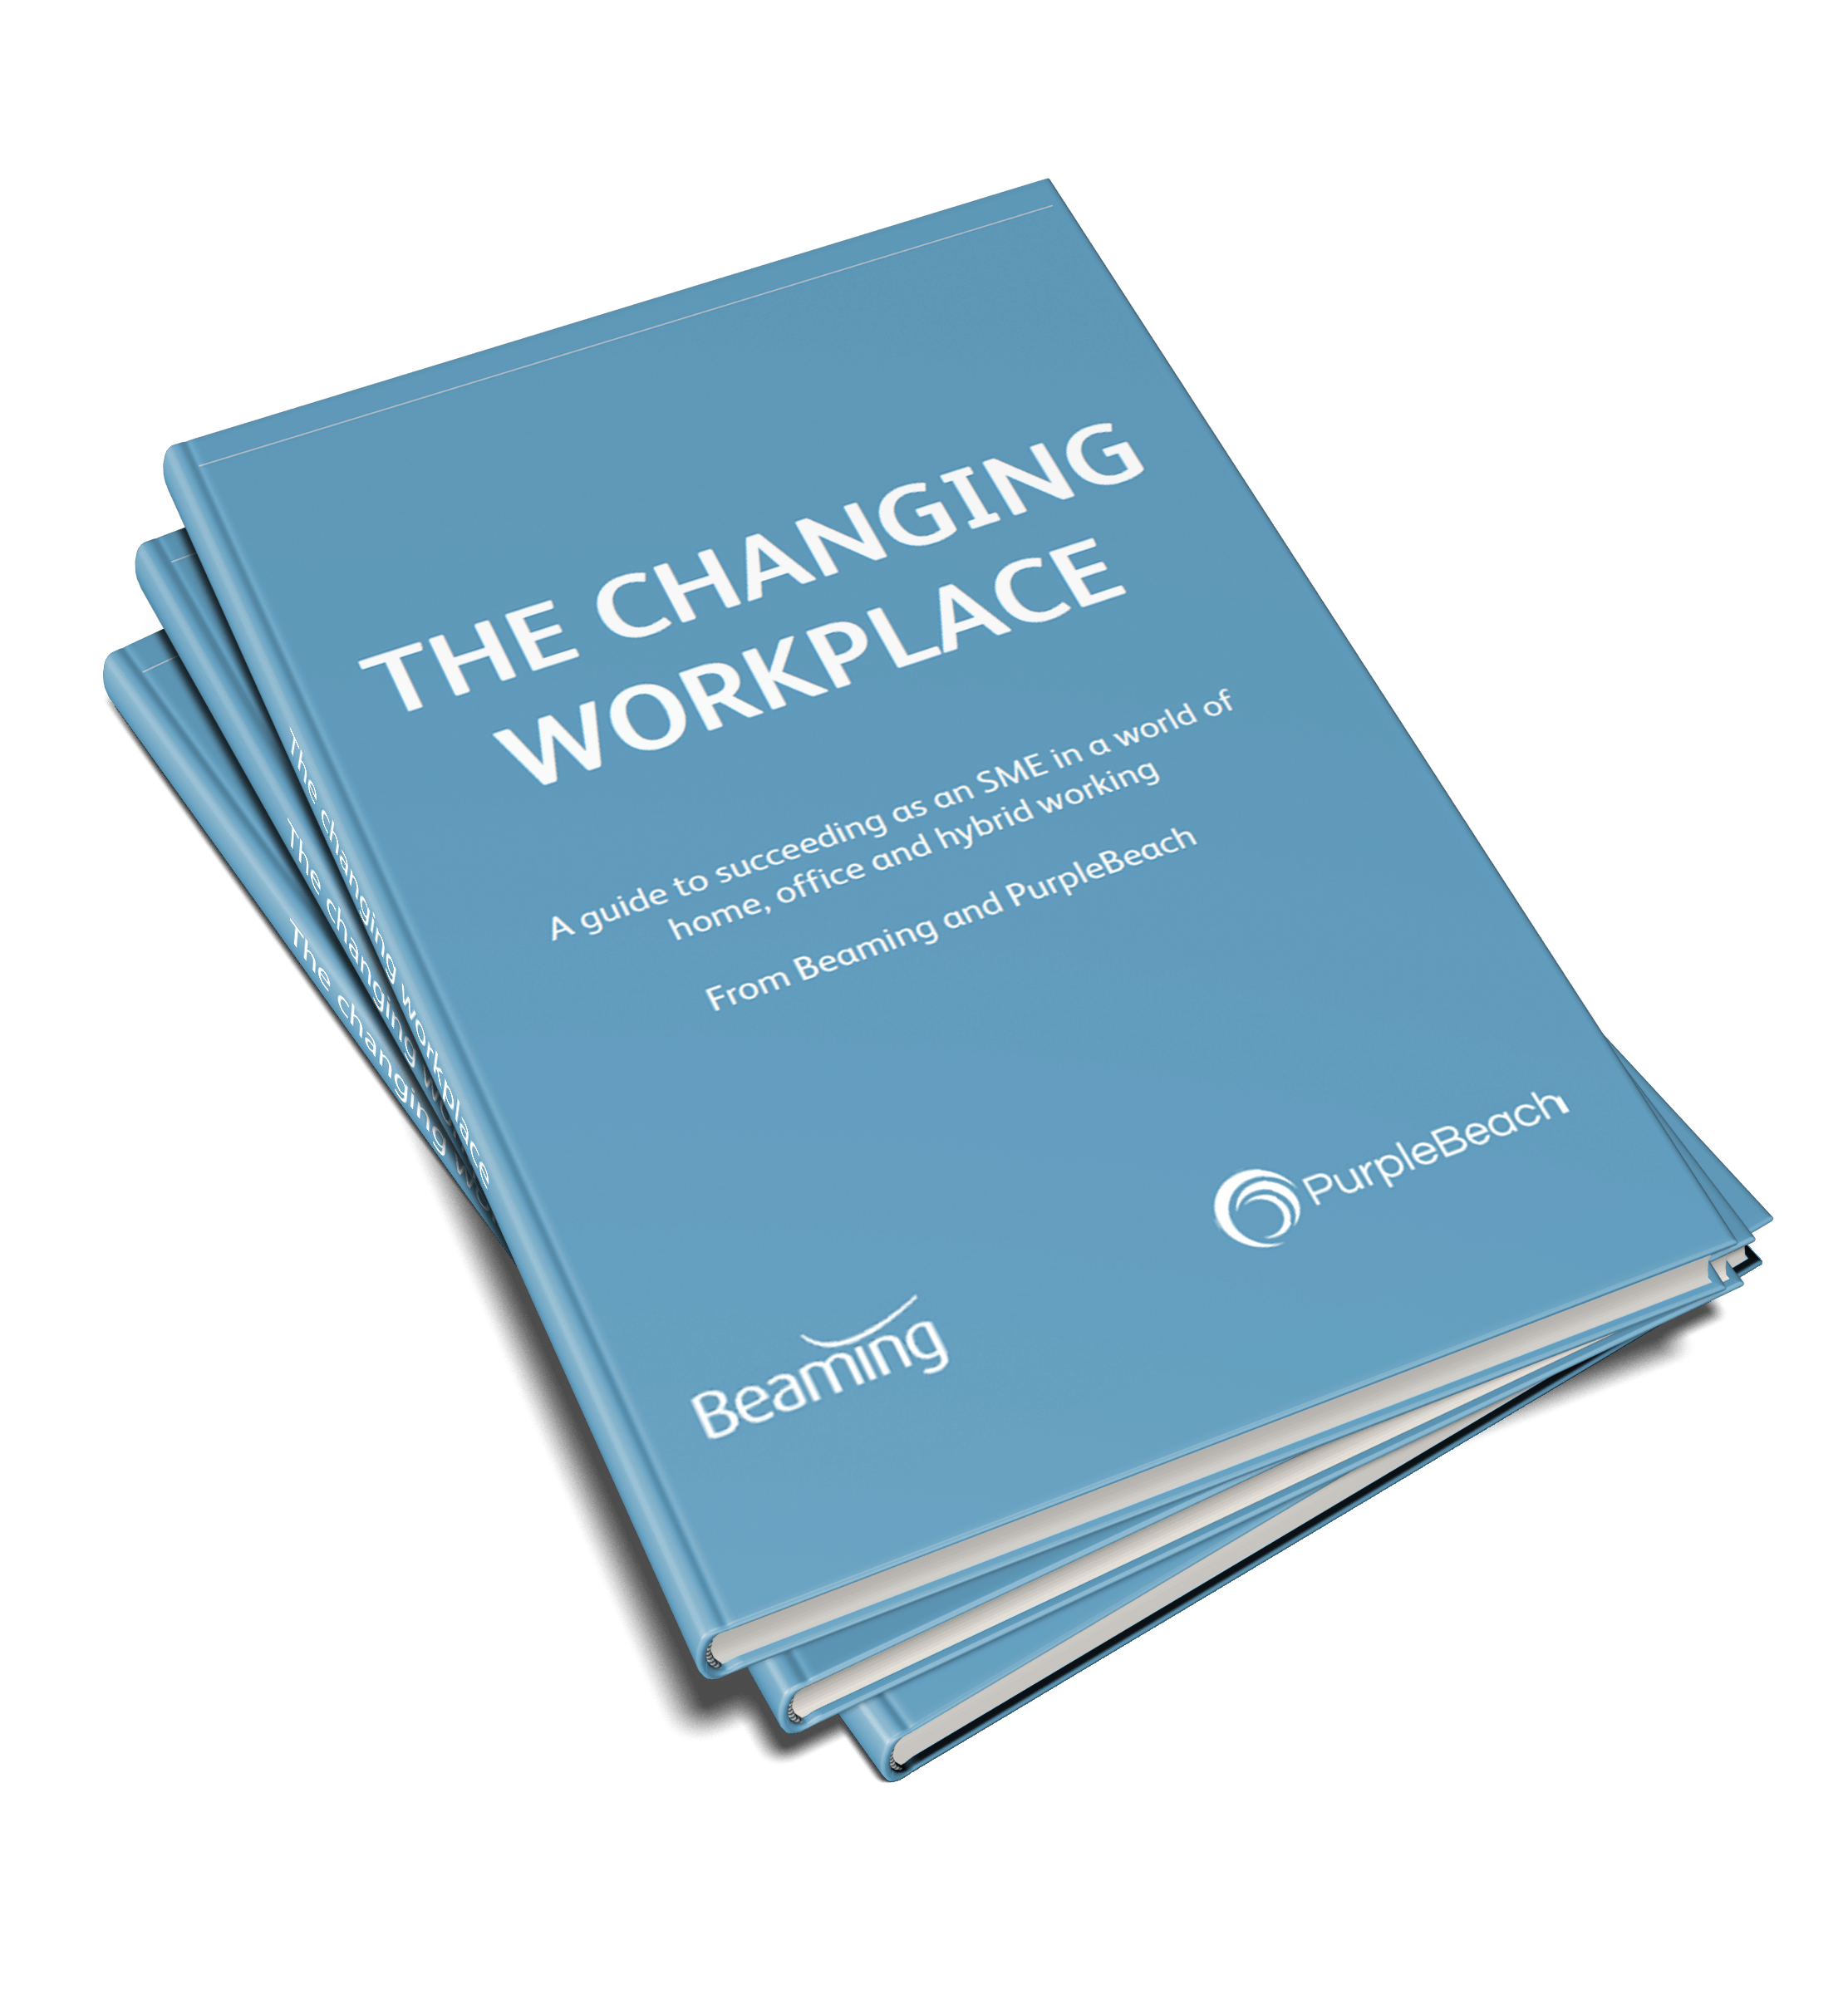 Changing workplace report